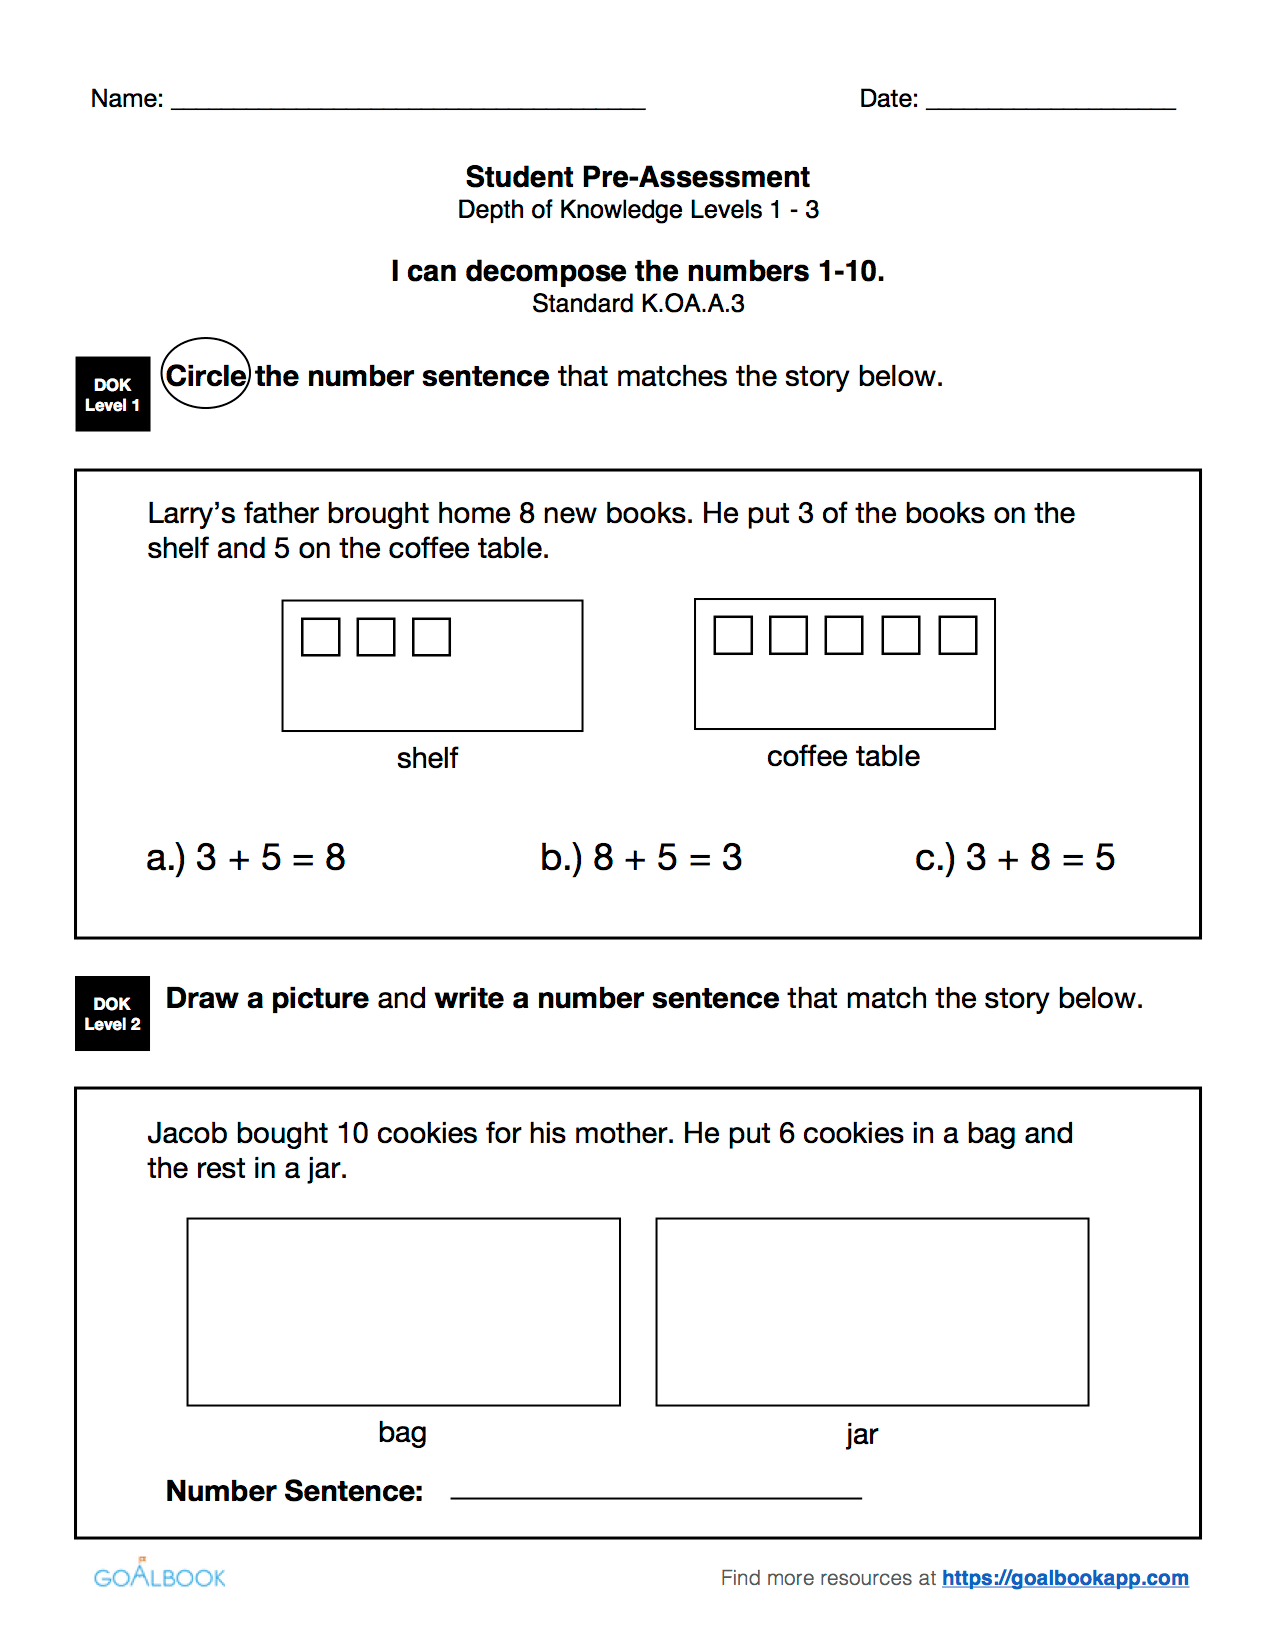 K Oa 3 Decompose Numbers 1 10